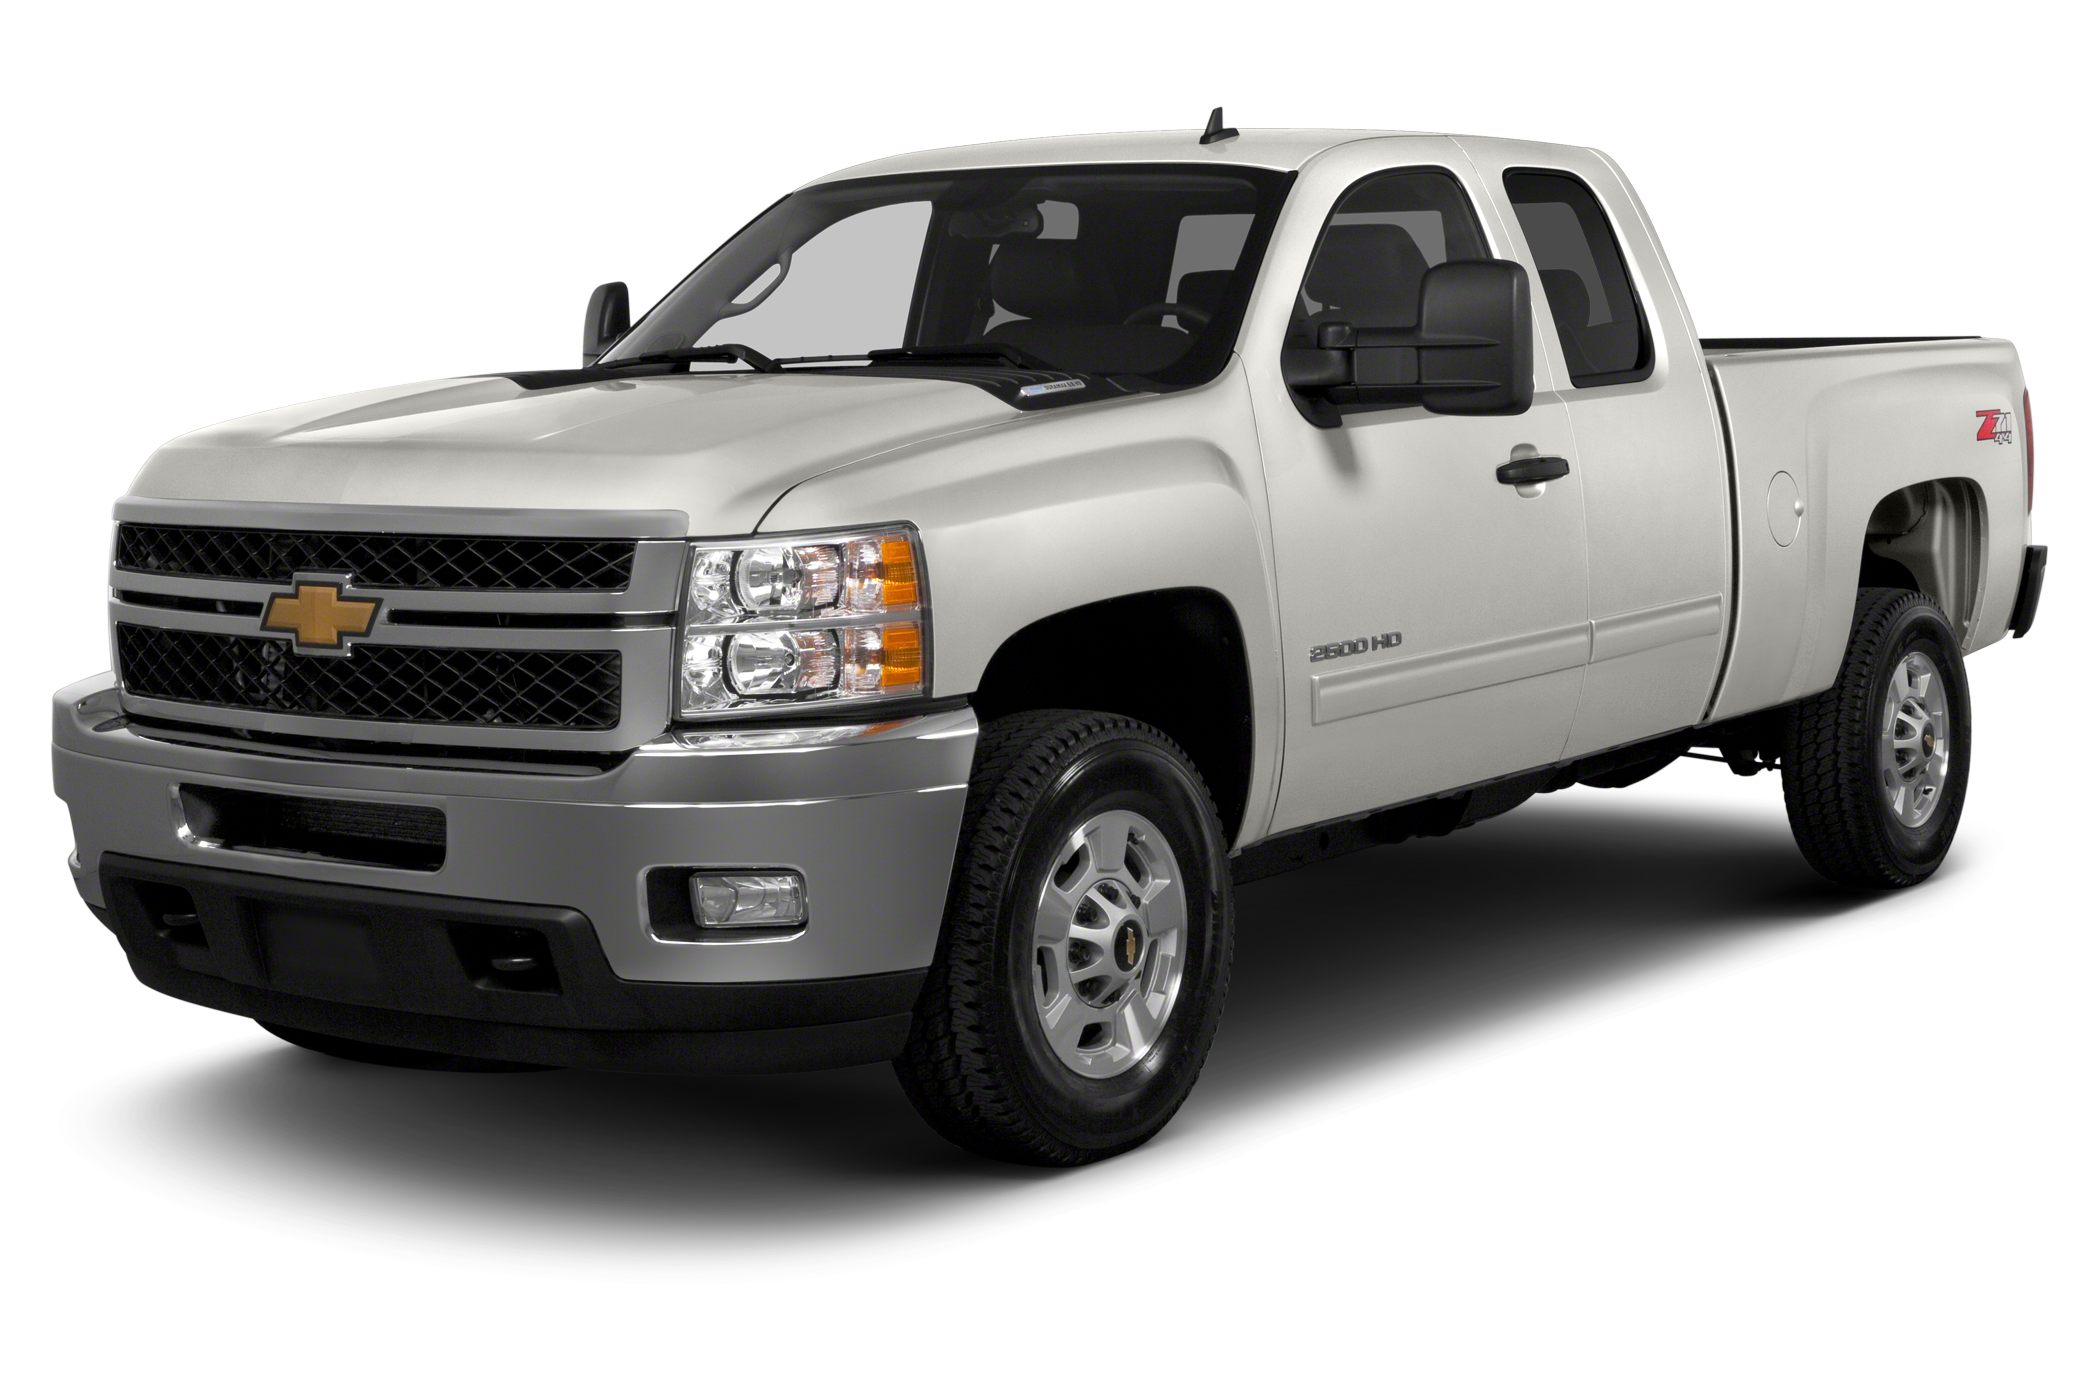 2013 Chevrolet Silverado 3500HD